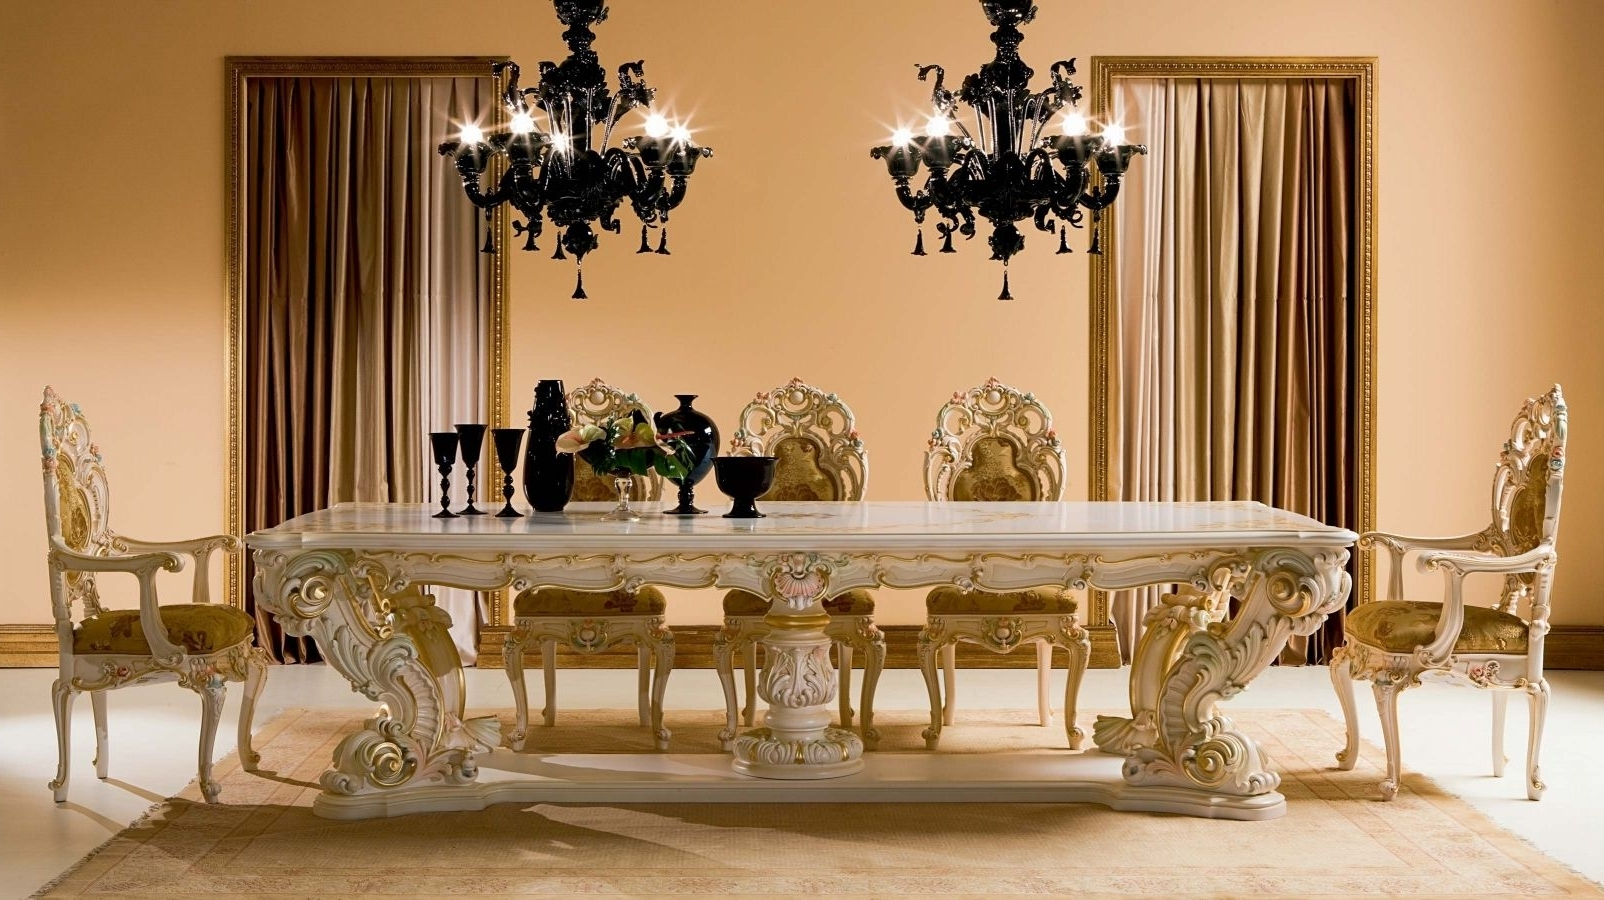 Crystal Dining Tables For Widely Used Classic Dining Table / Crystal / Rectangular / For Hotels – Minerva (View 5 of 25)